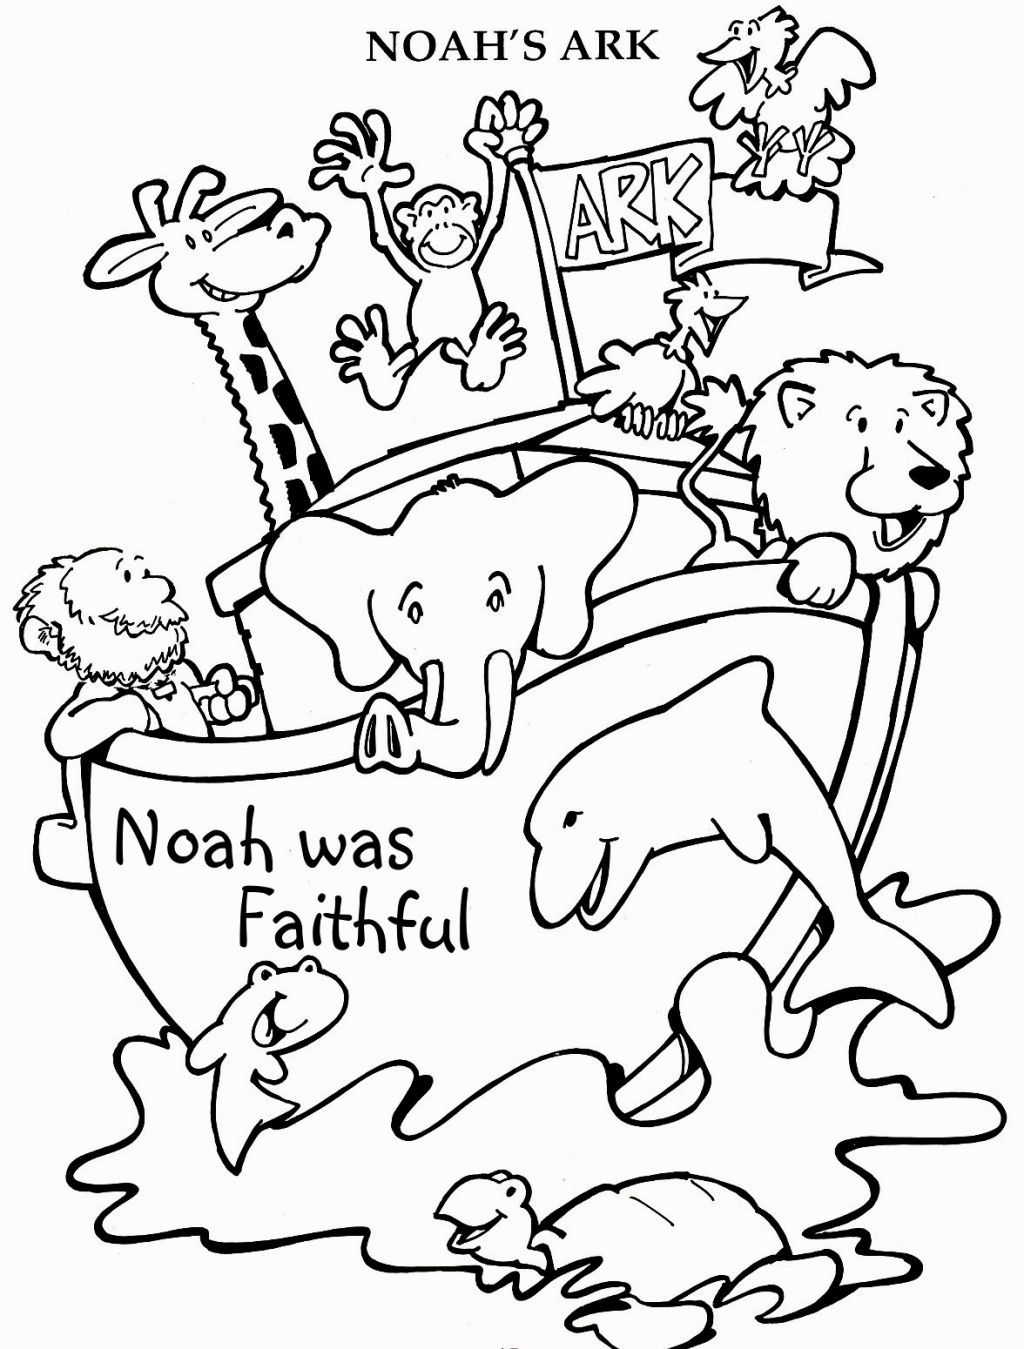 It's just a photo of Epic Noah's Ark Printable